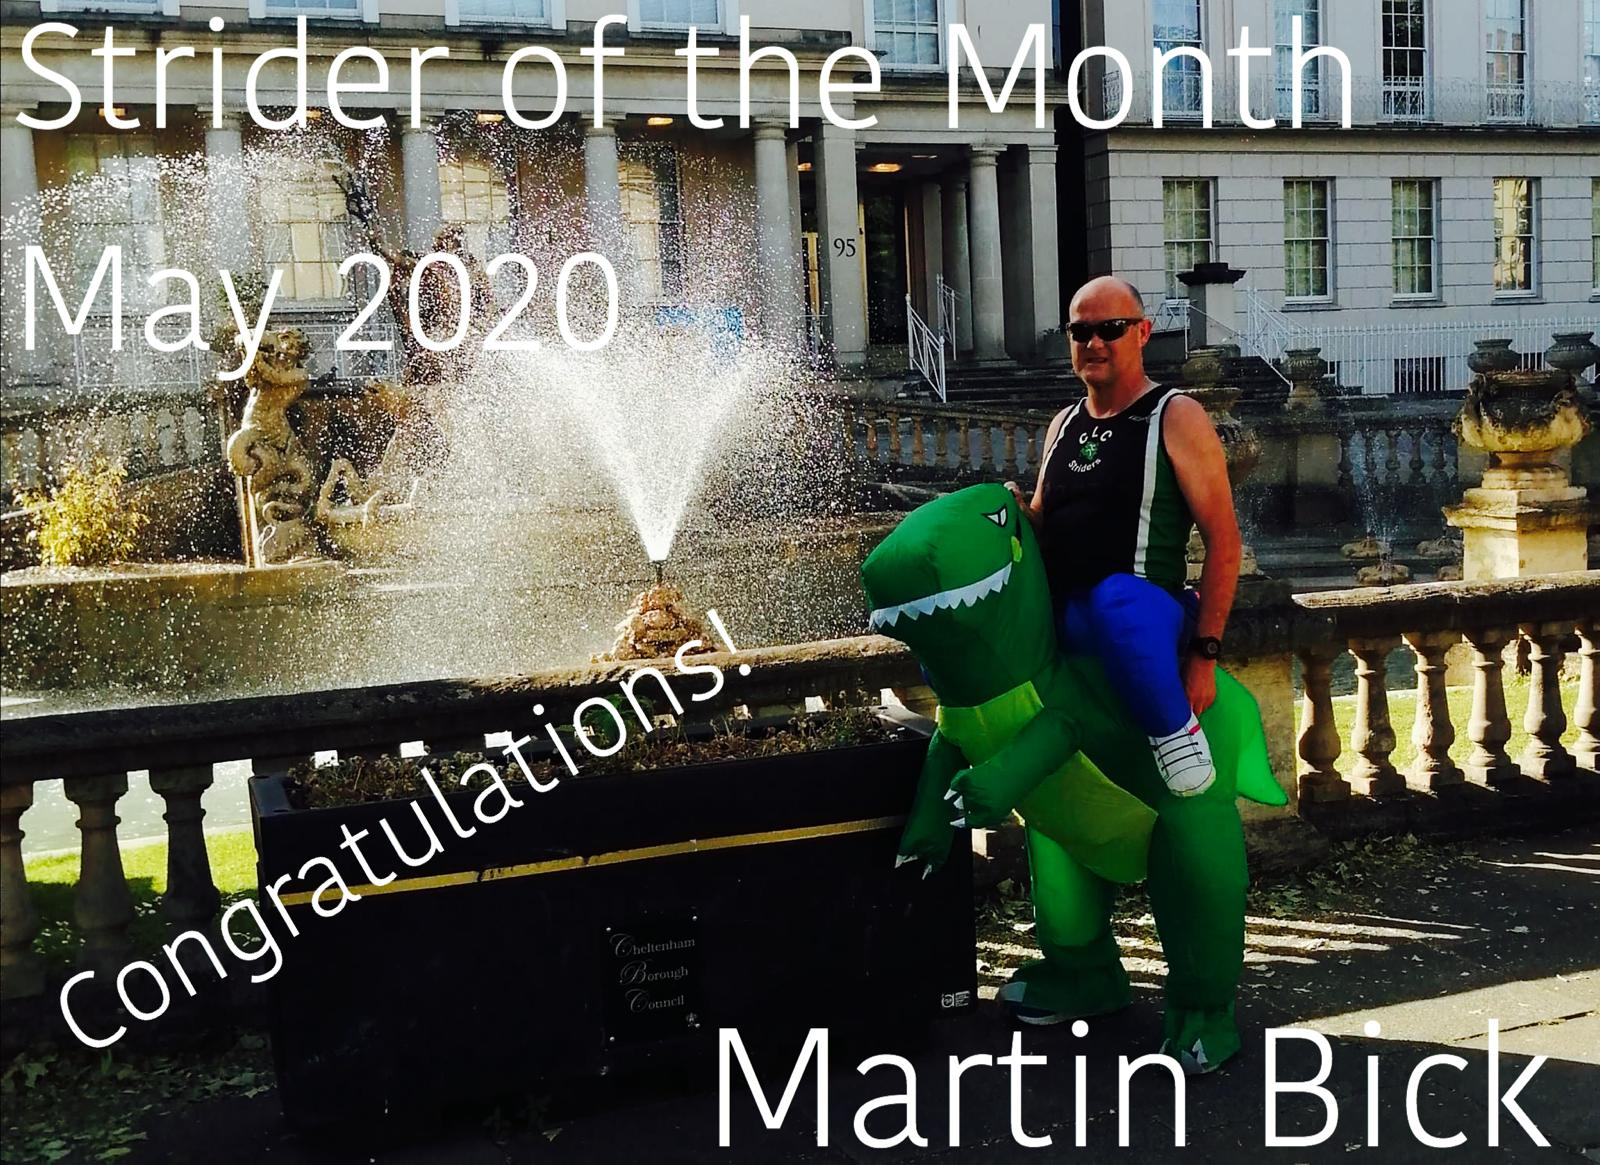 Strider of the month Martin Bick